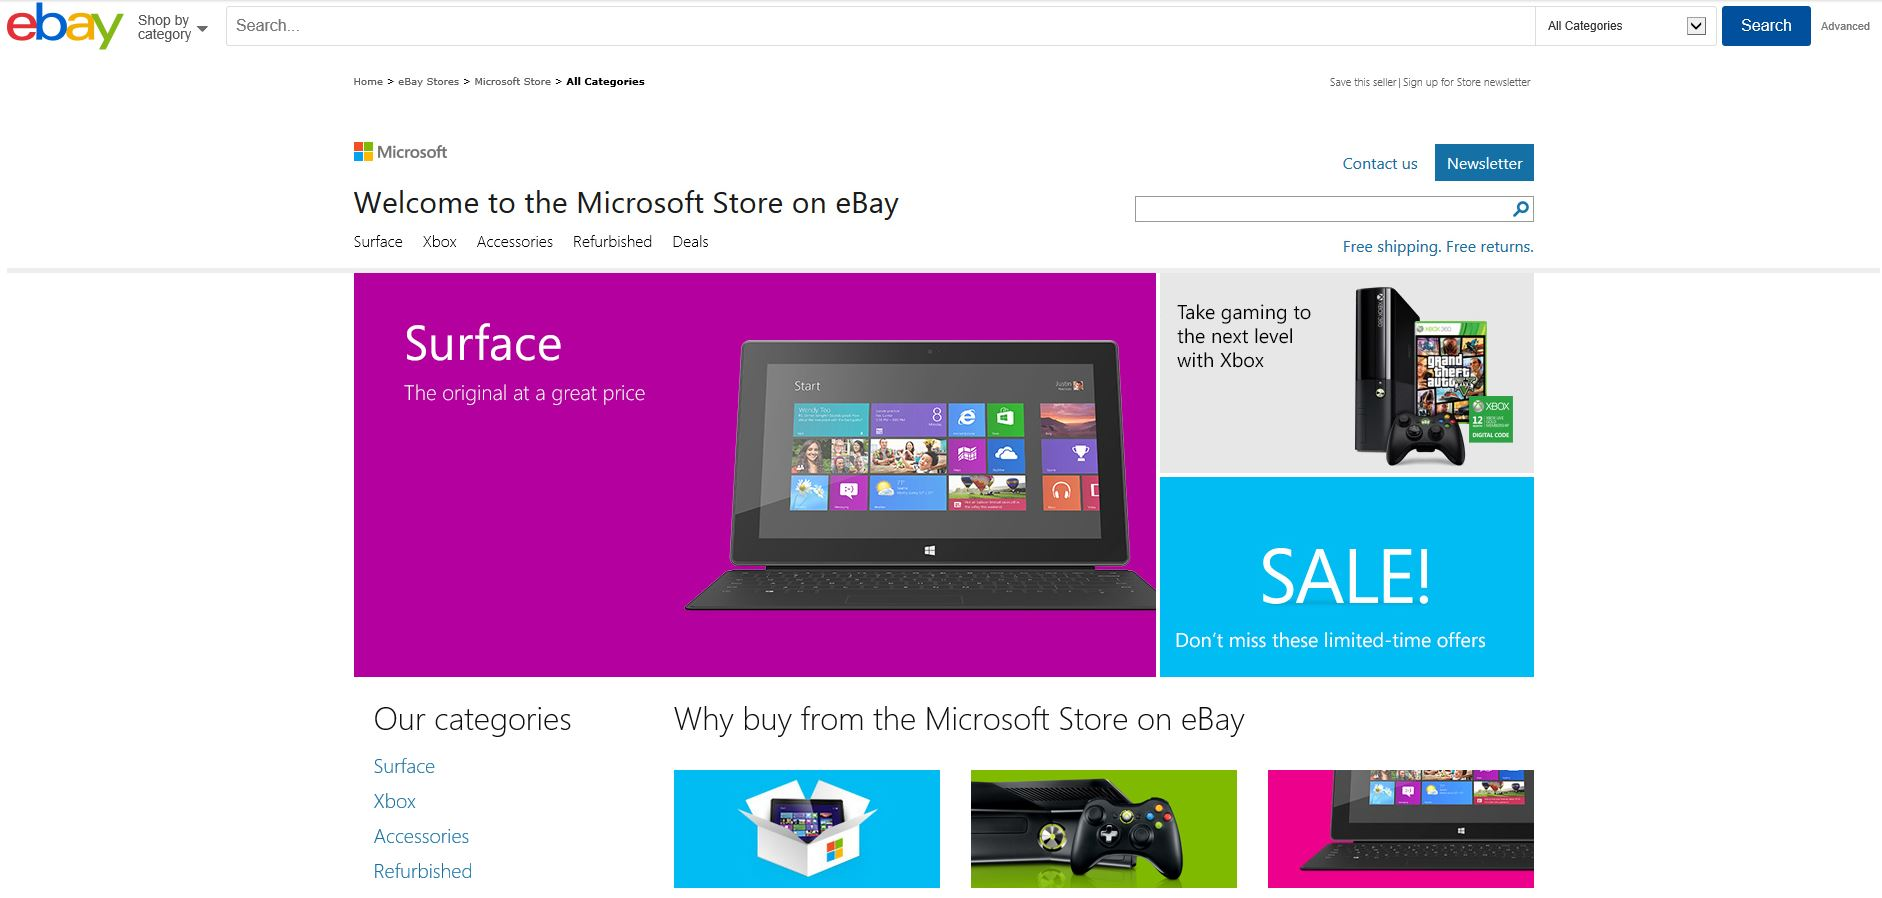 Microsoft opens a dedicated store front on eBay